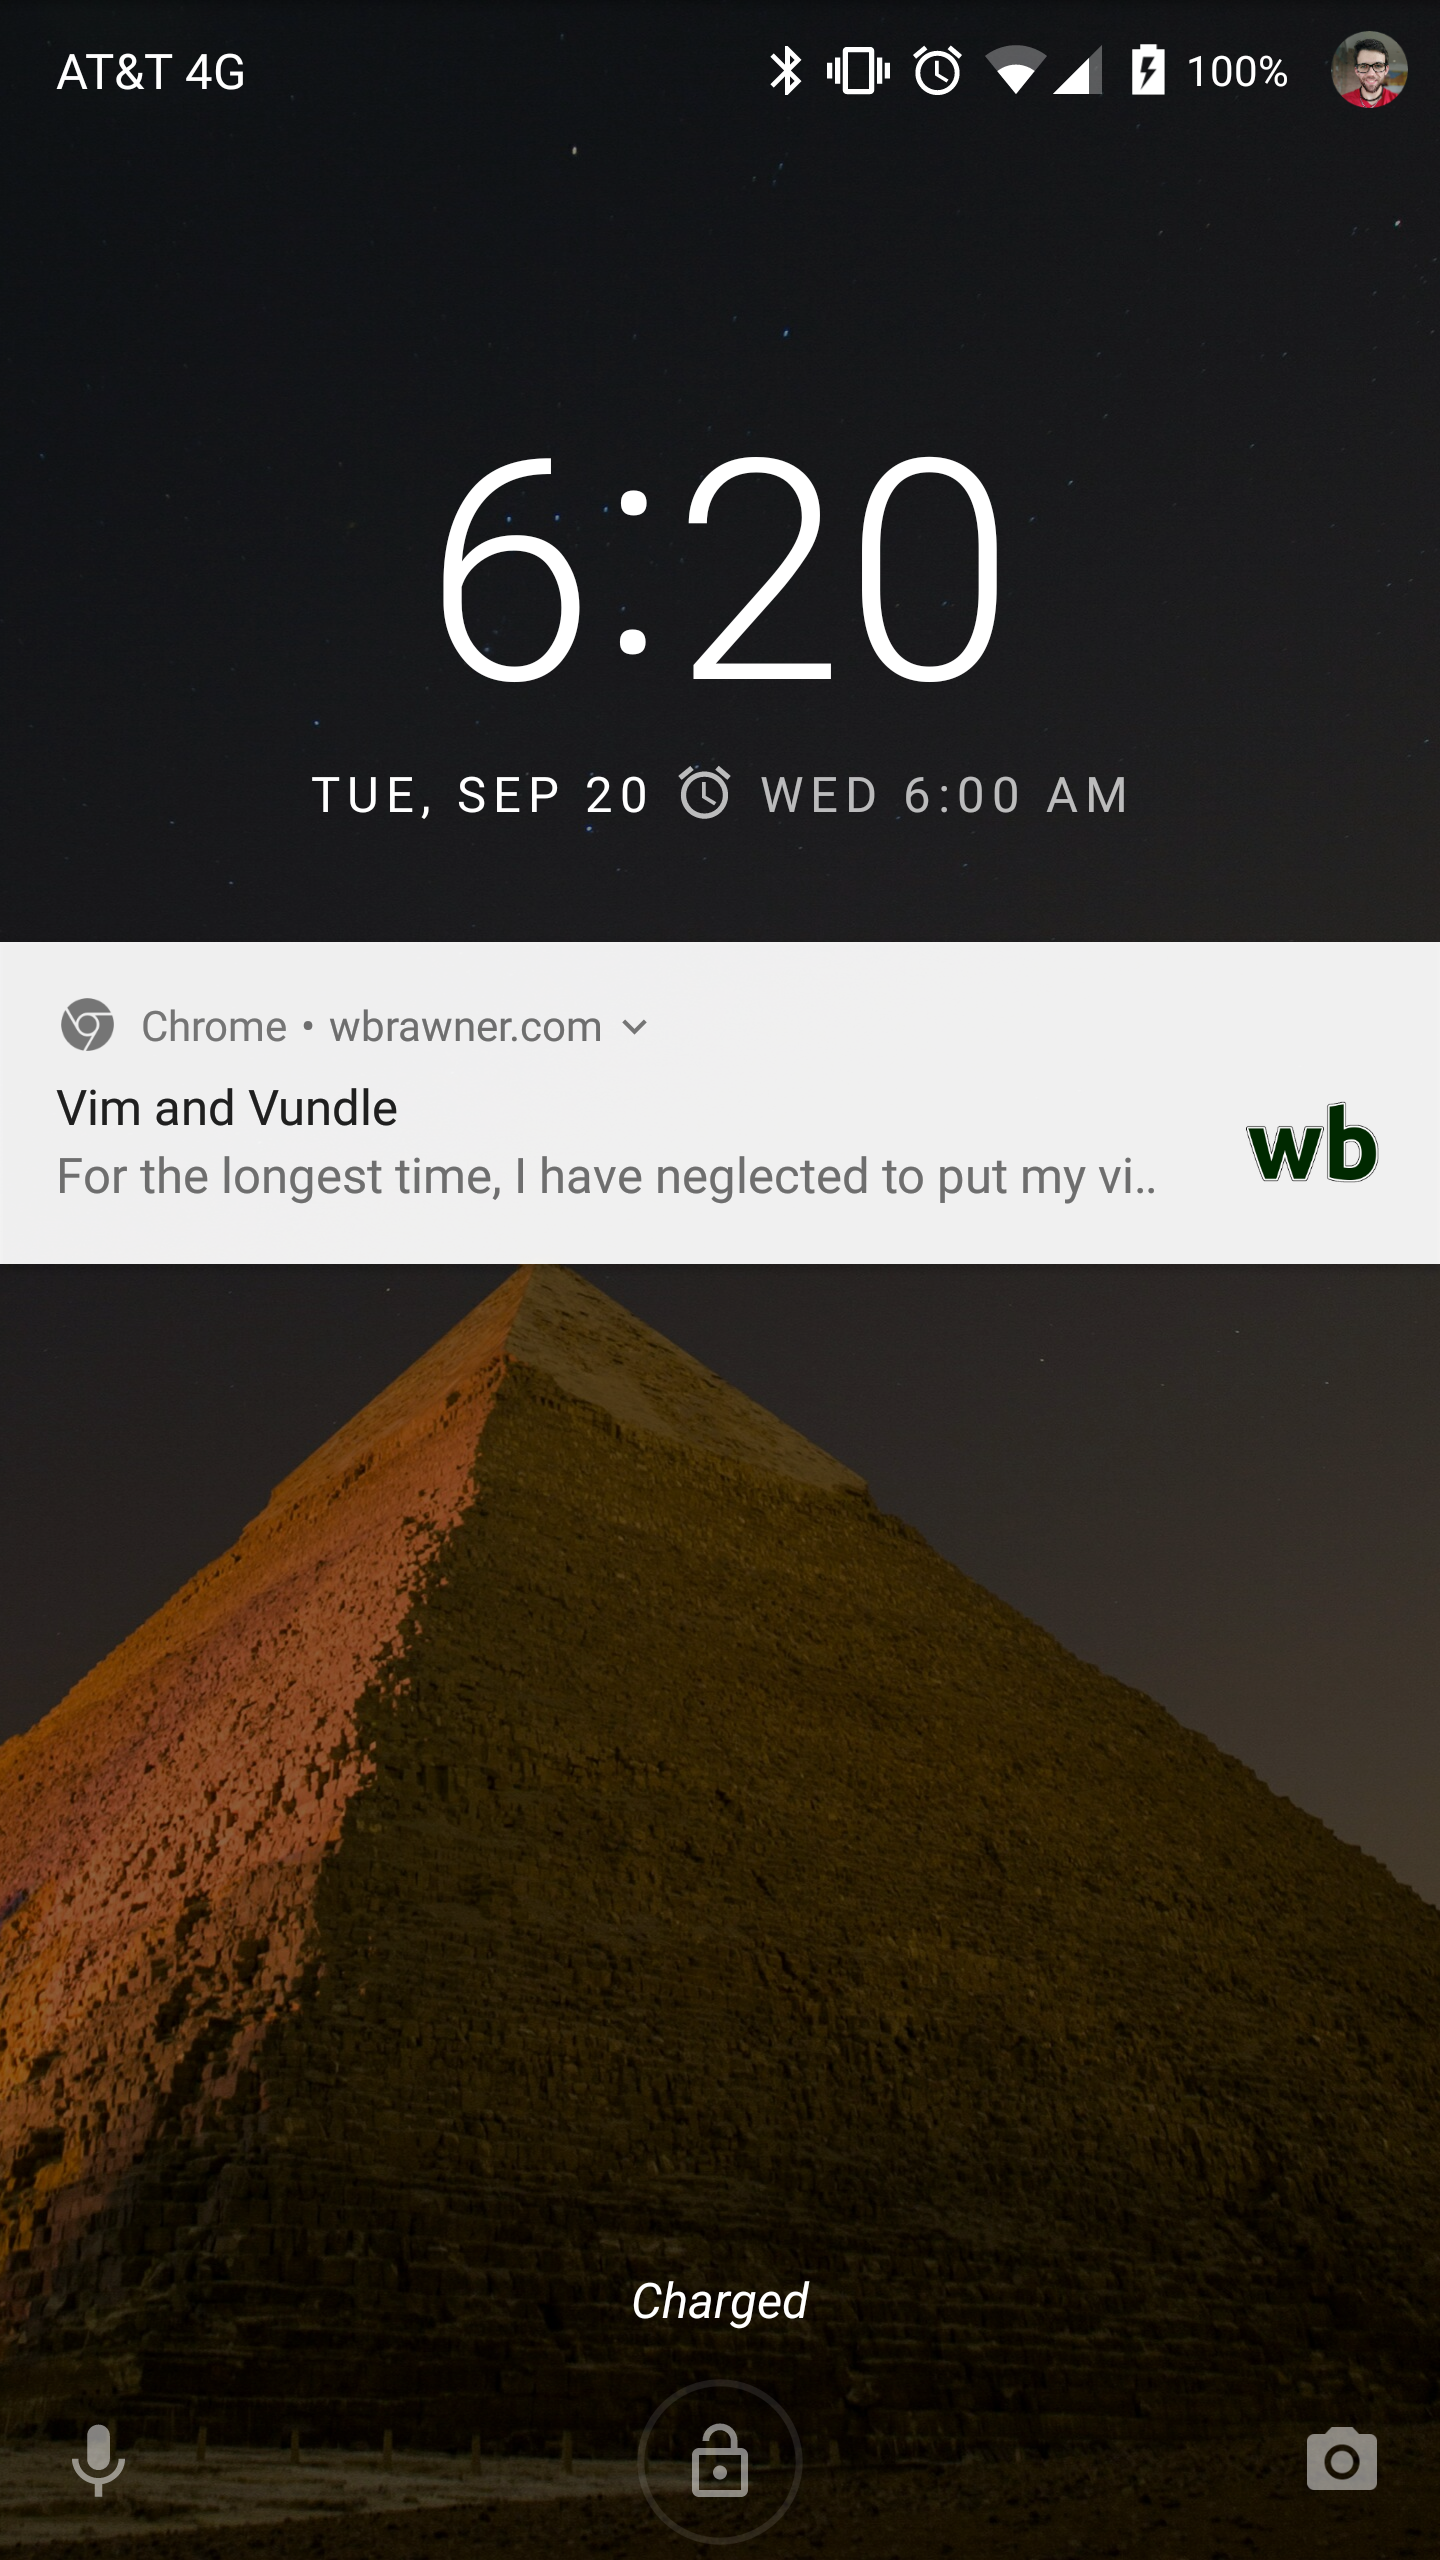 A screenshot of an Android phone lock screen shows a notification of a new post from my blog